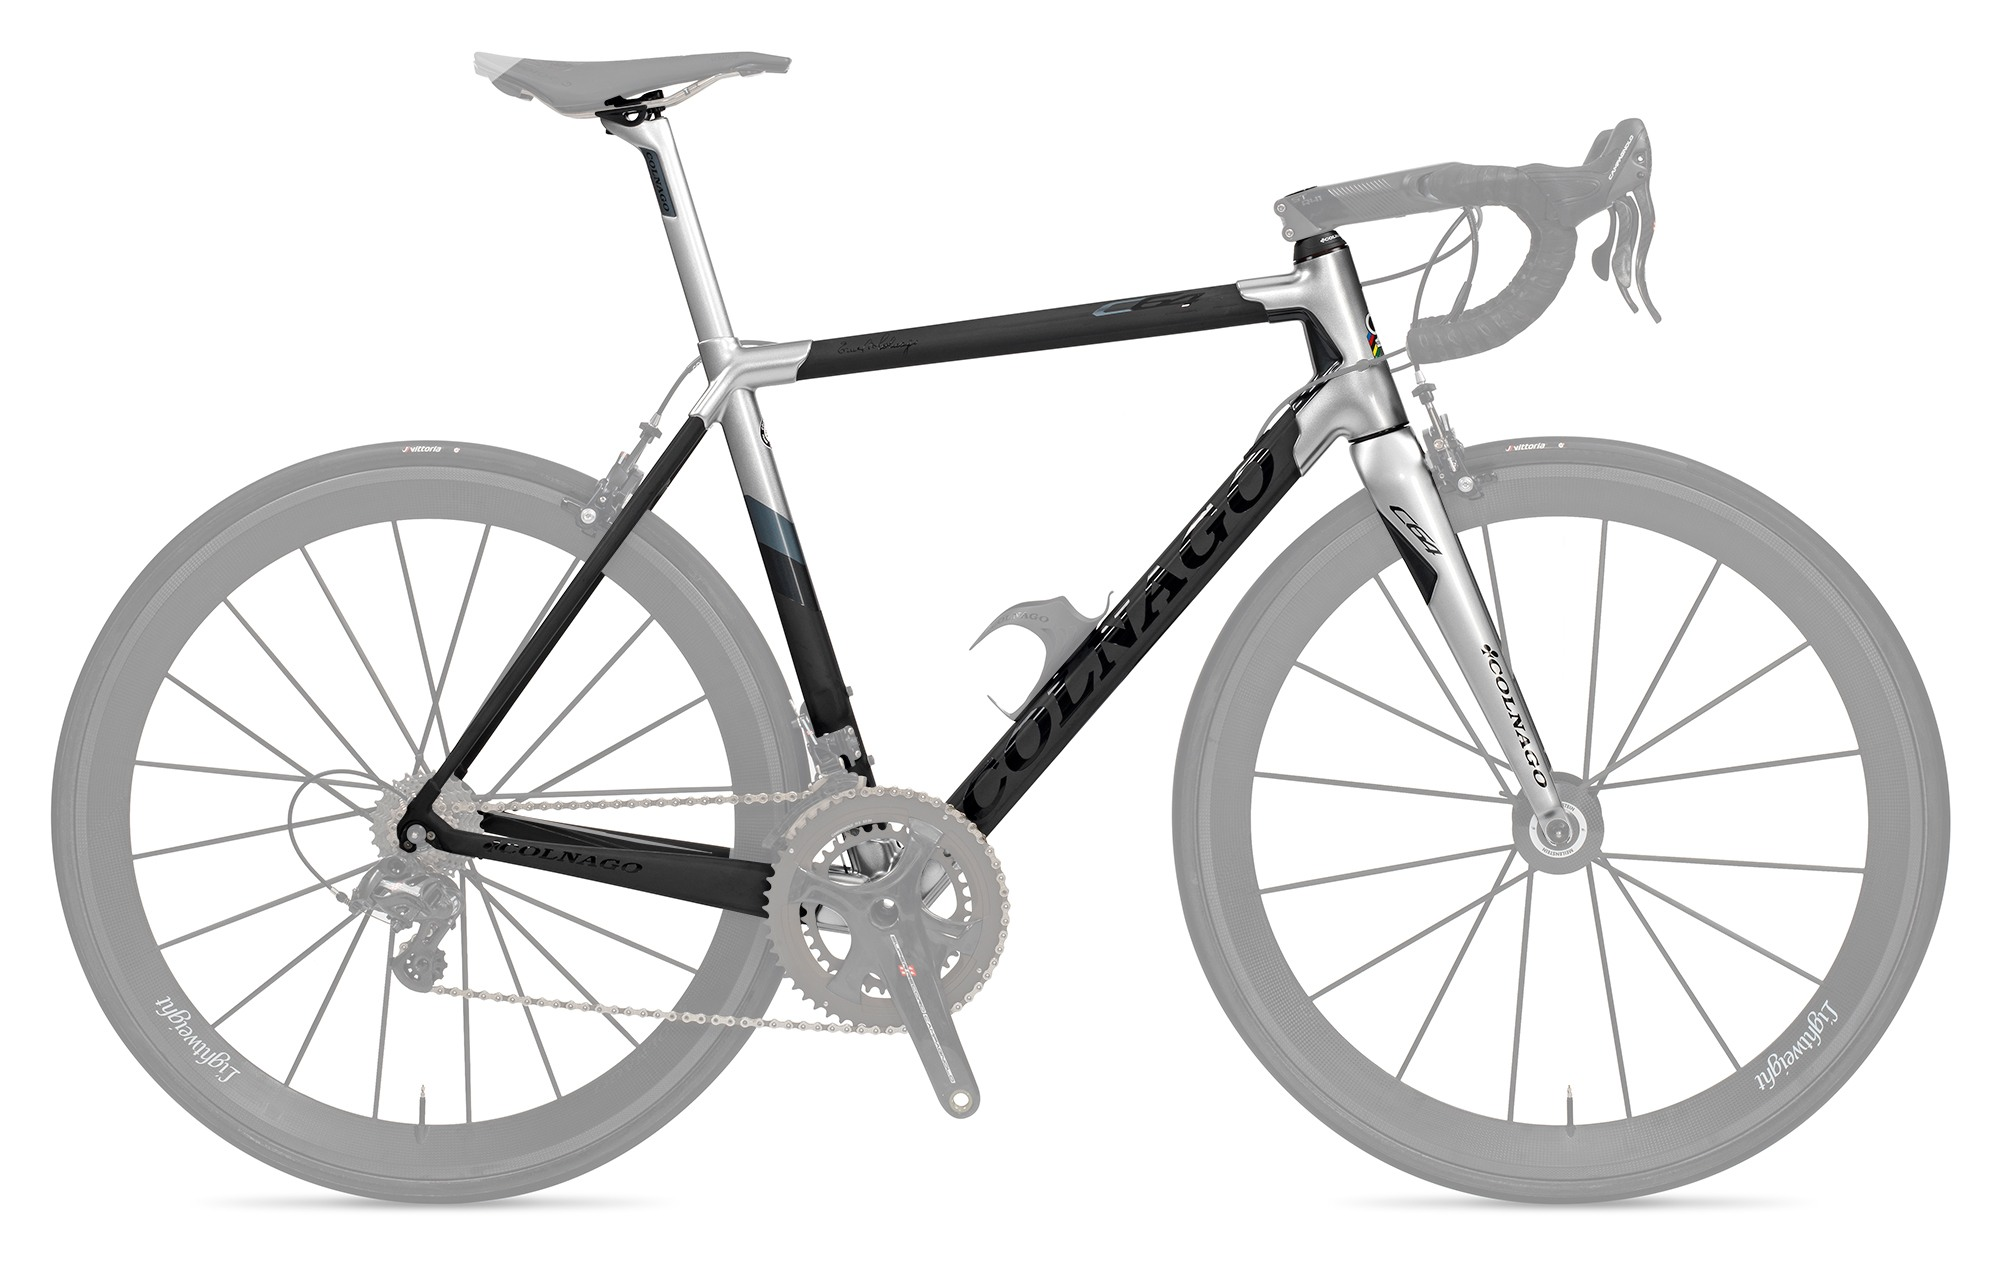 697b580fb15 Colnago C64 Daytona Pro+ Bike | R&A Cycles